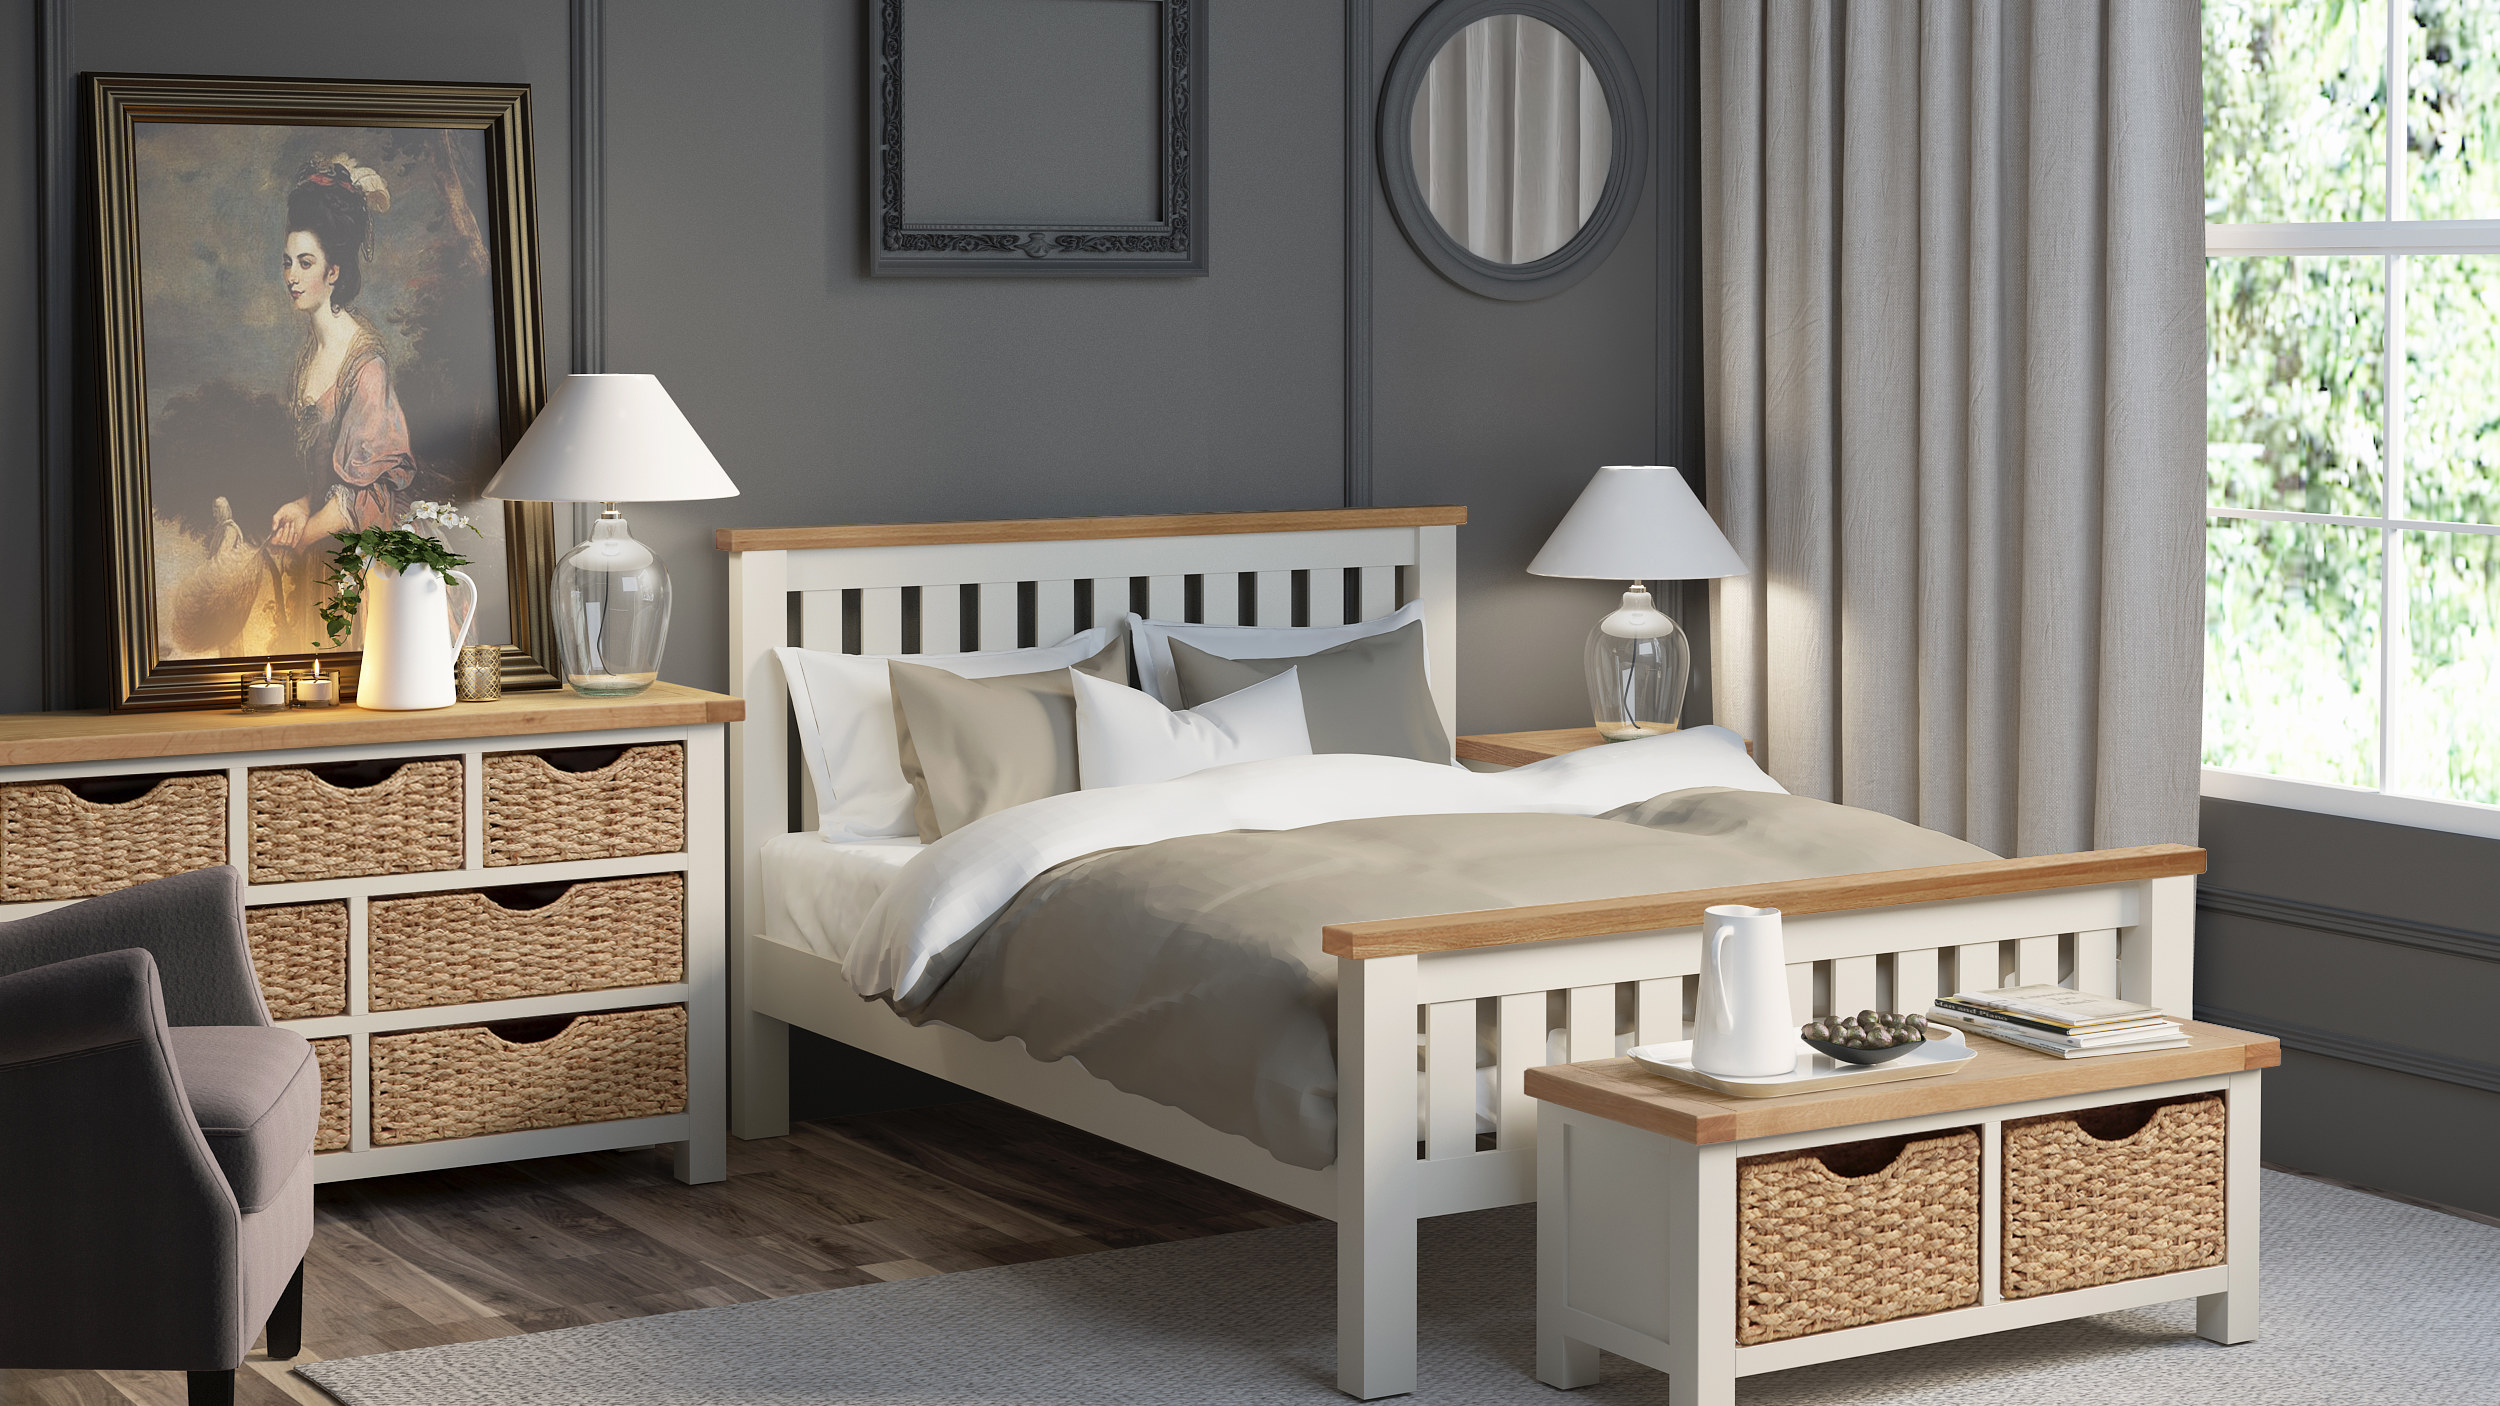 Rustique Home Florence Painted Oak Bed in Cream and Natural Oak double tone color